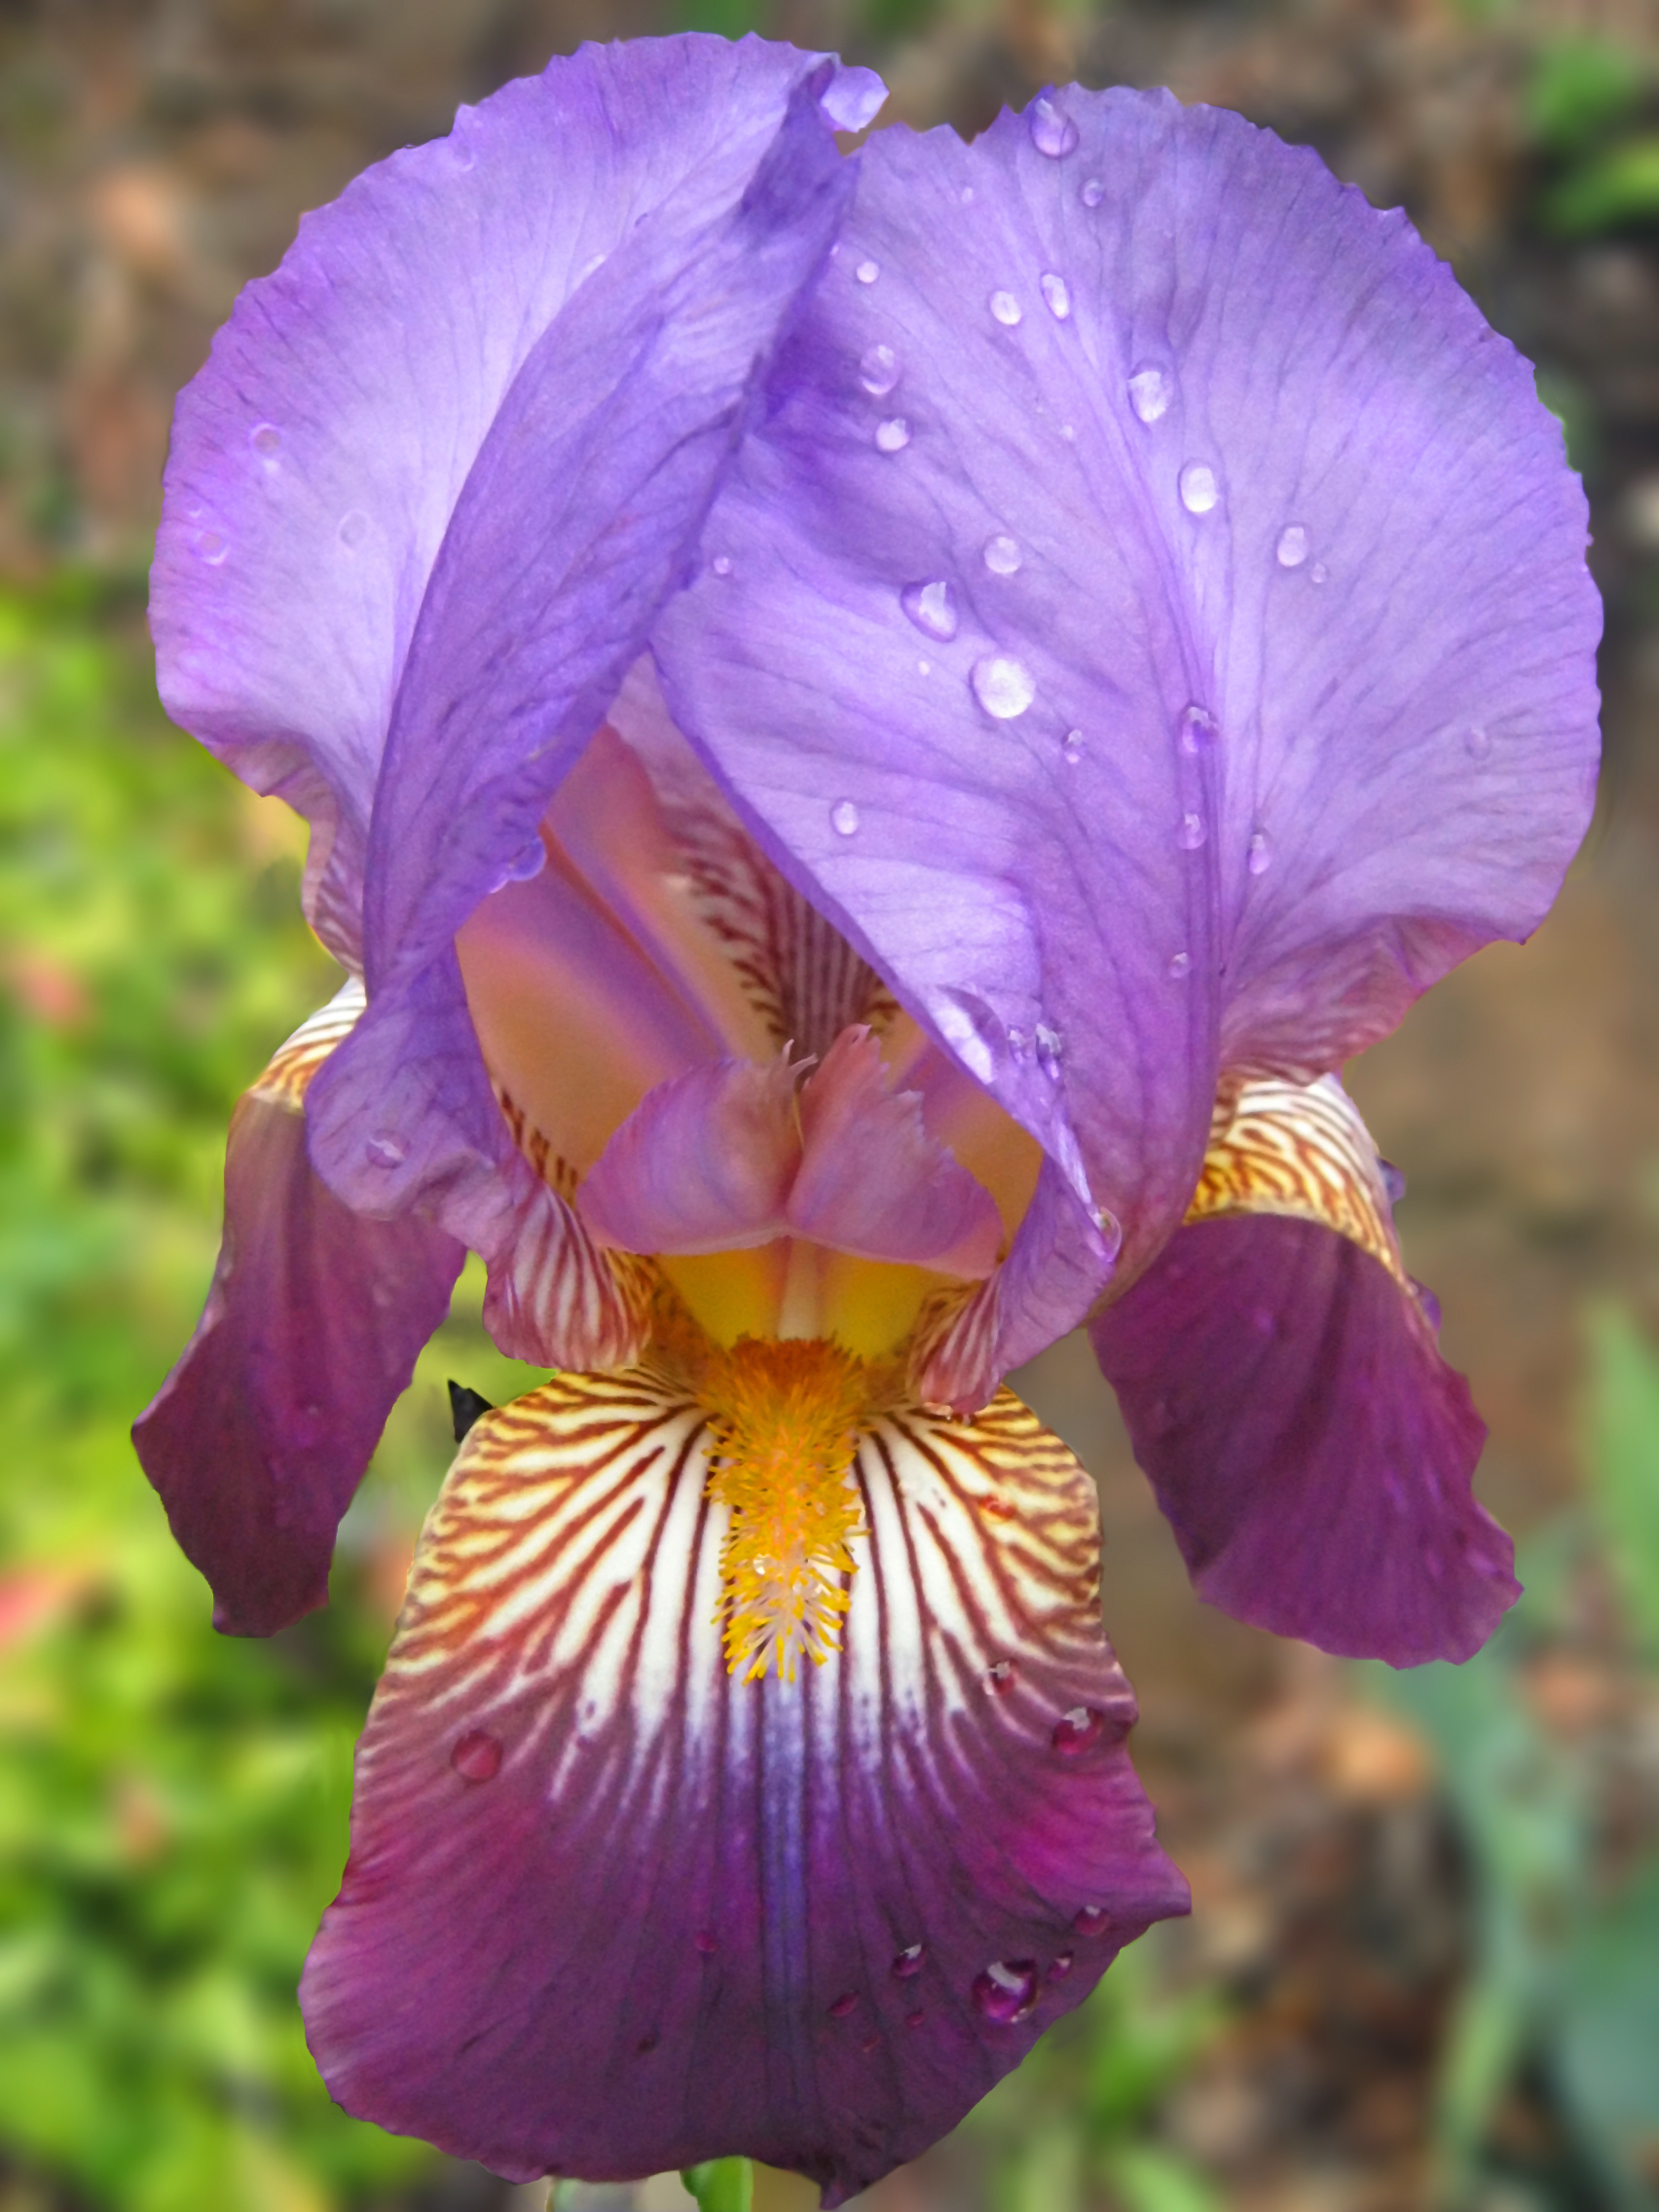 Filepurple iris png wikimedia commons filepurple iris png izmirmasajfo